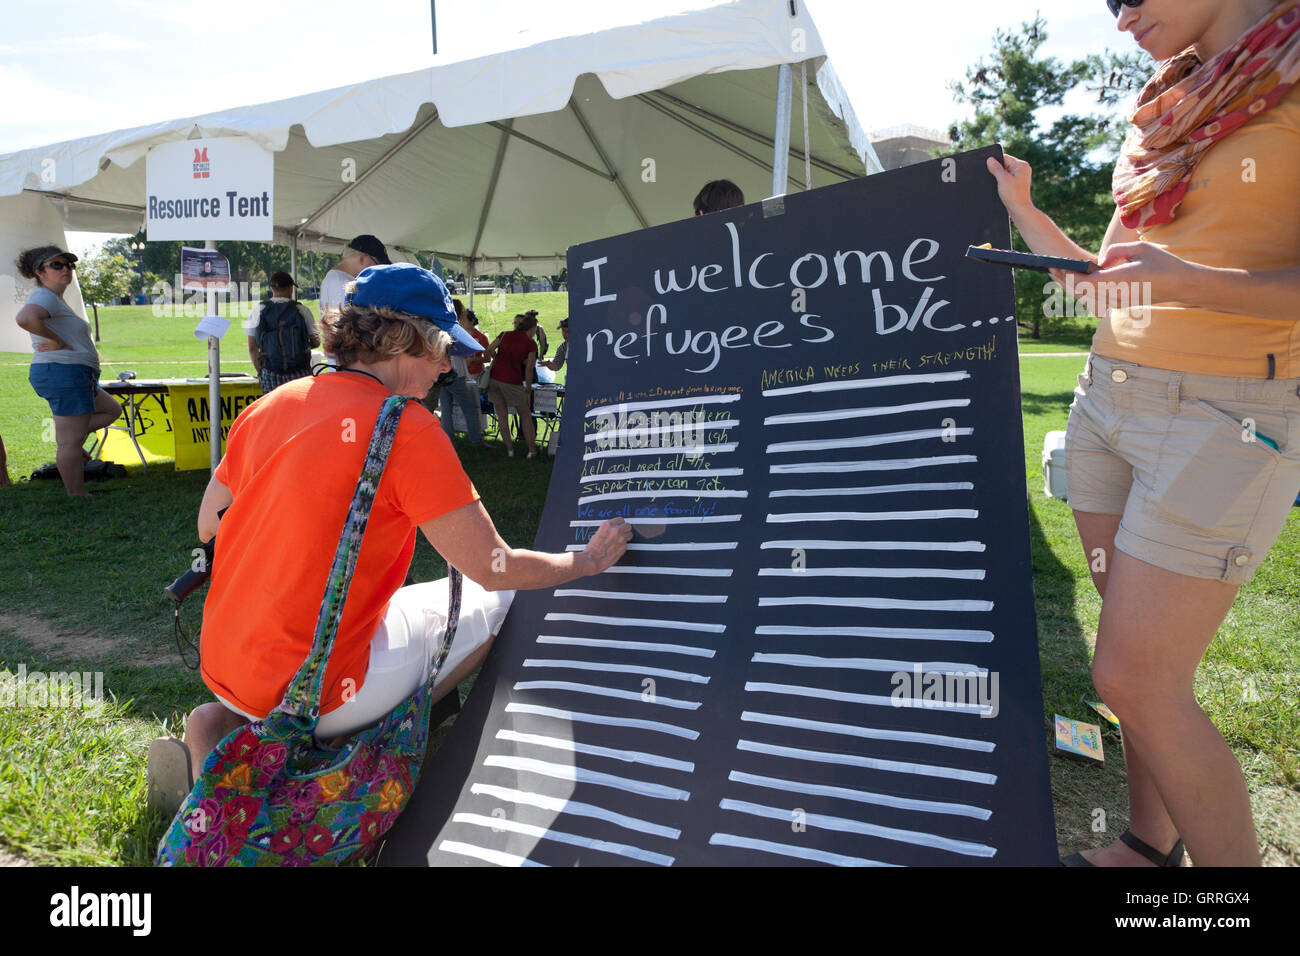 Pro-refugee activist holding sign - Washington, DC USA - Stock Image